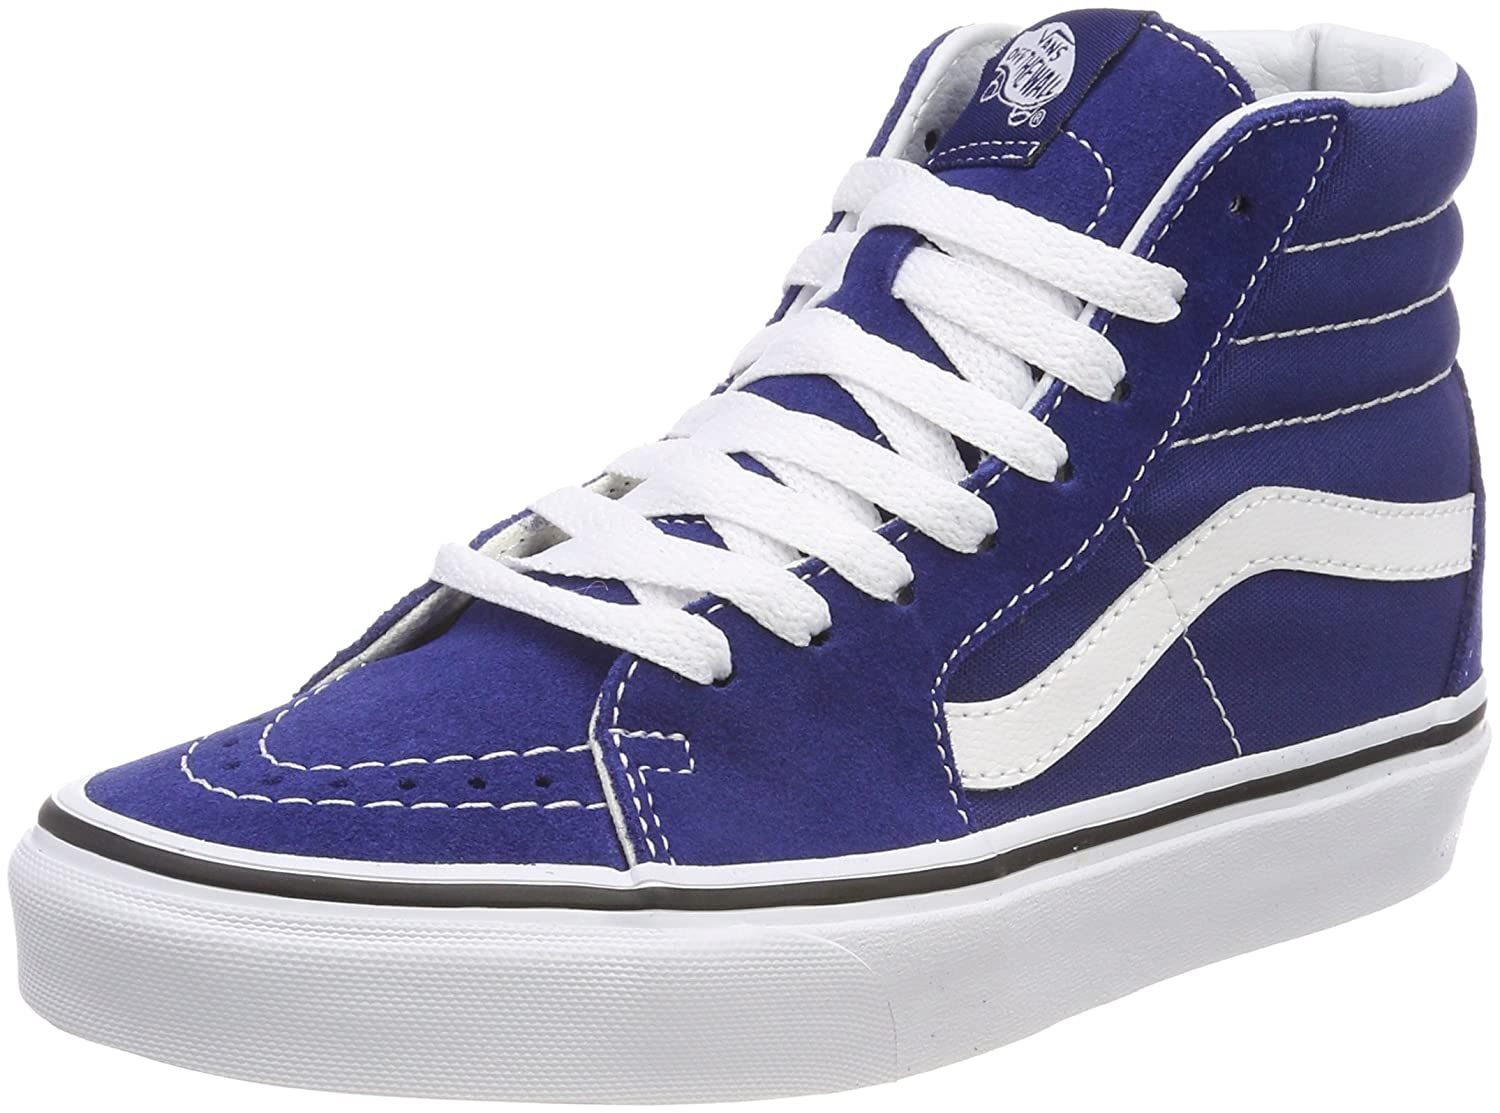 Vans Unisex Sk8-Hi Skate Shoe B074HD3YFD 8 M UK|Estate Blue/True White